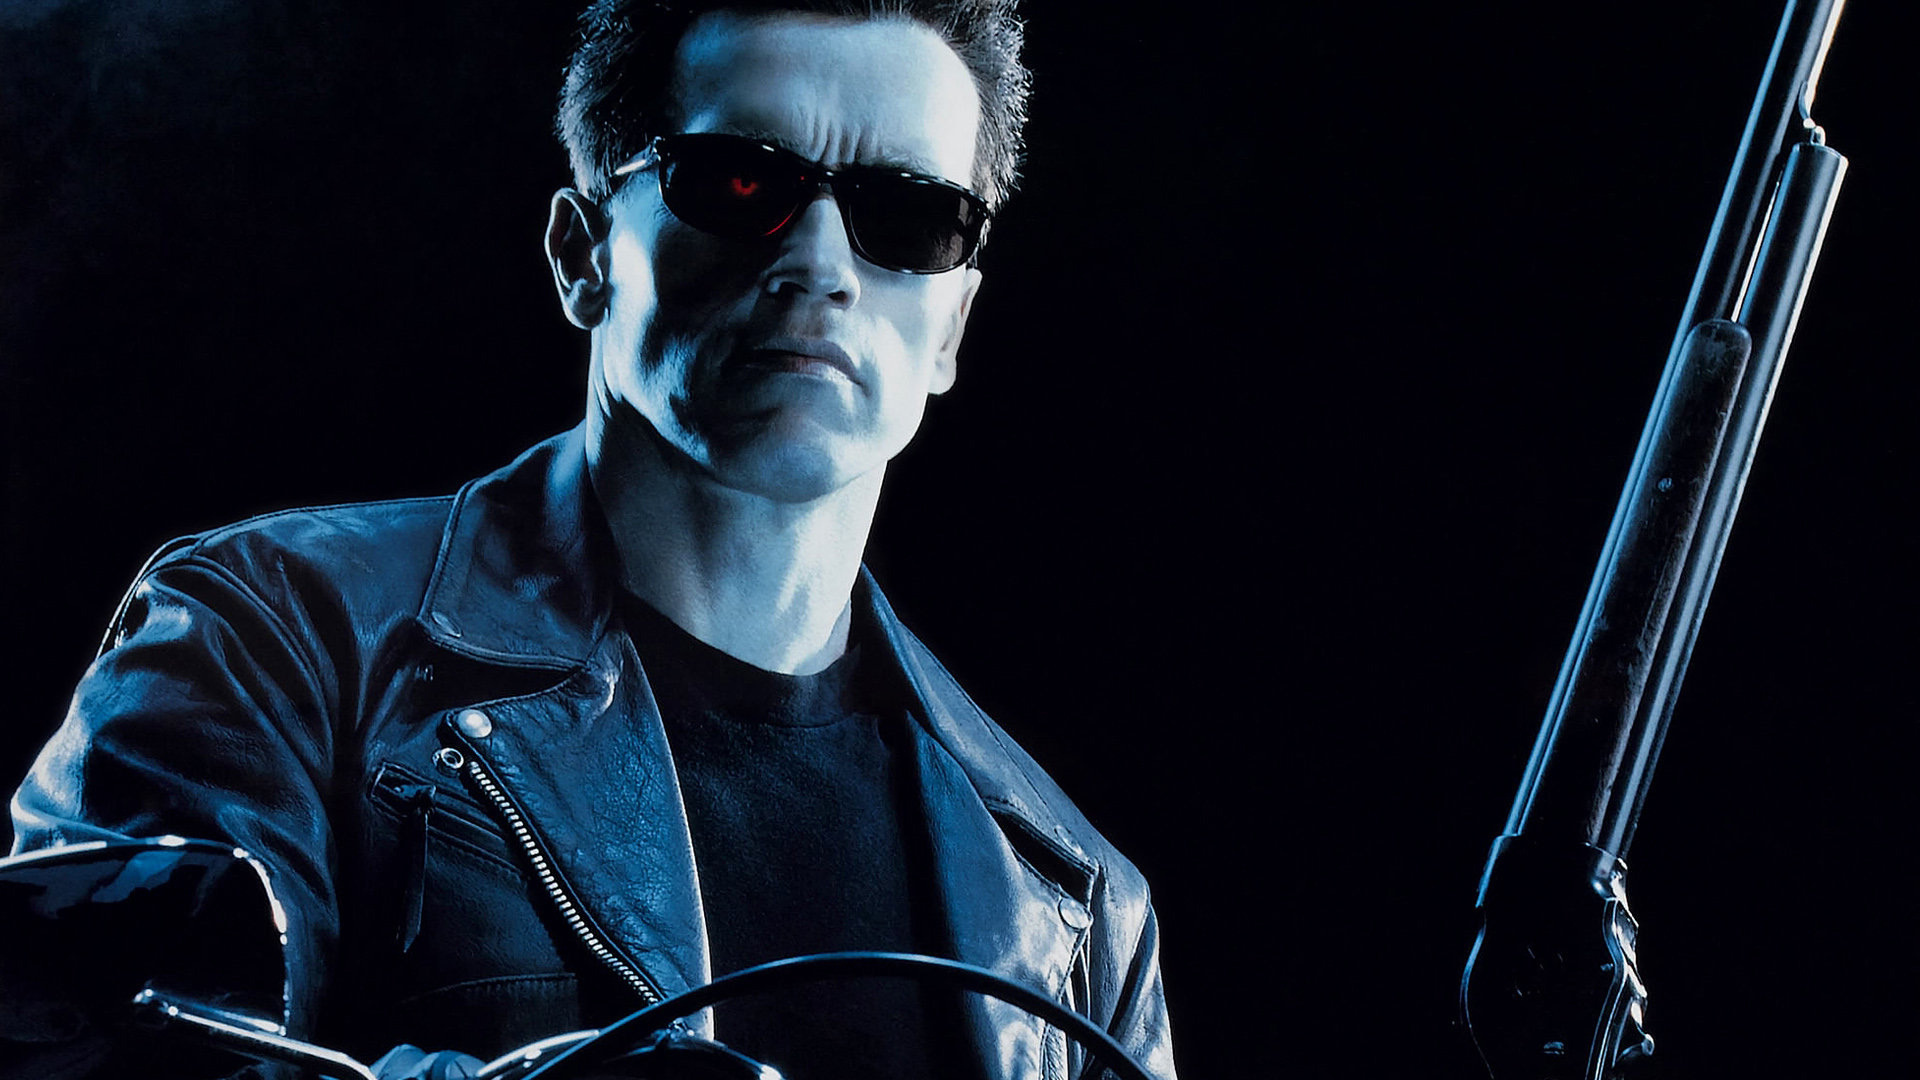 Photo of Terminator 2: Judgement Day Coming To A Theatre Near You In 3D Format